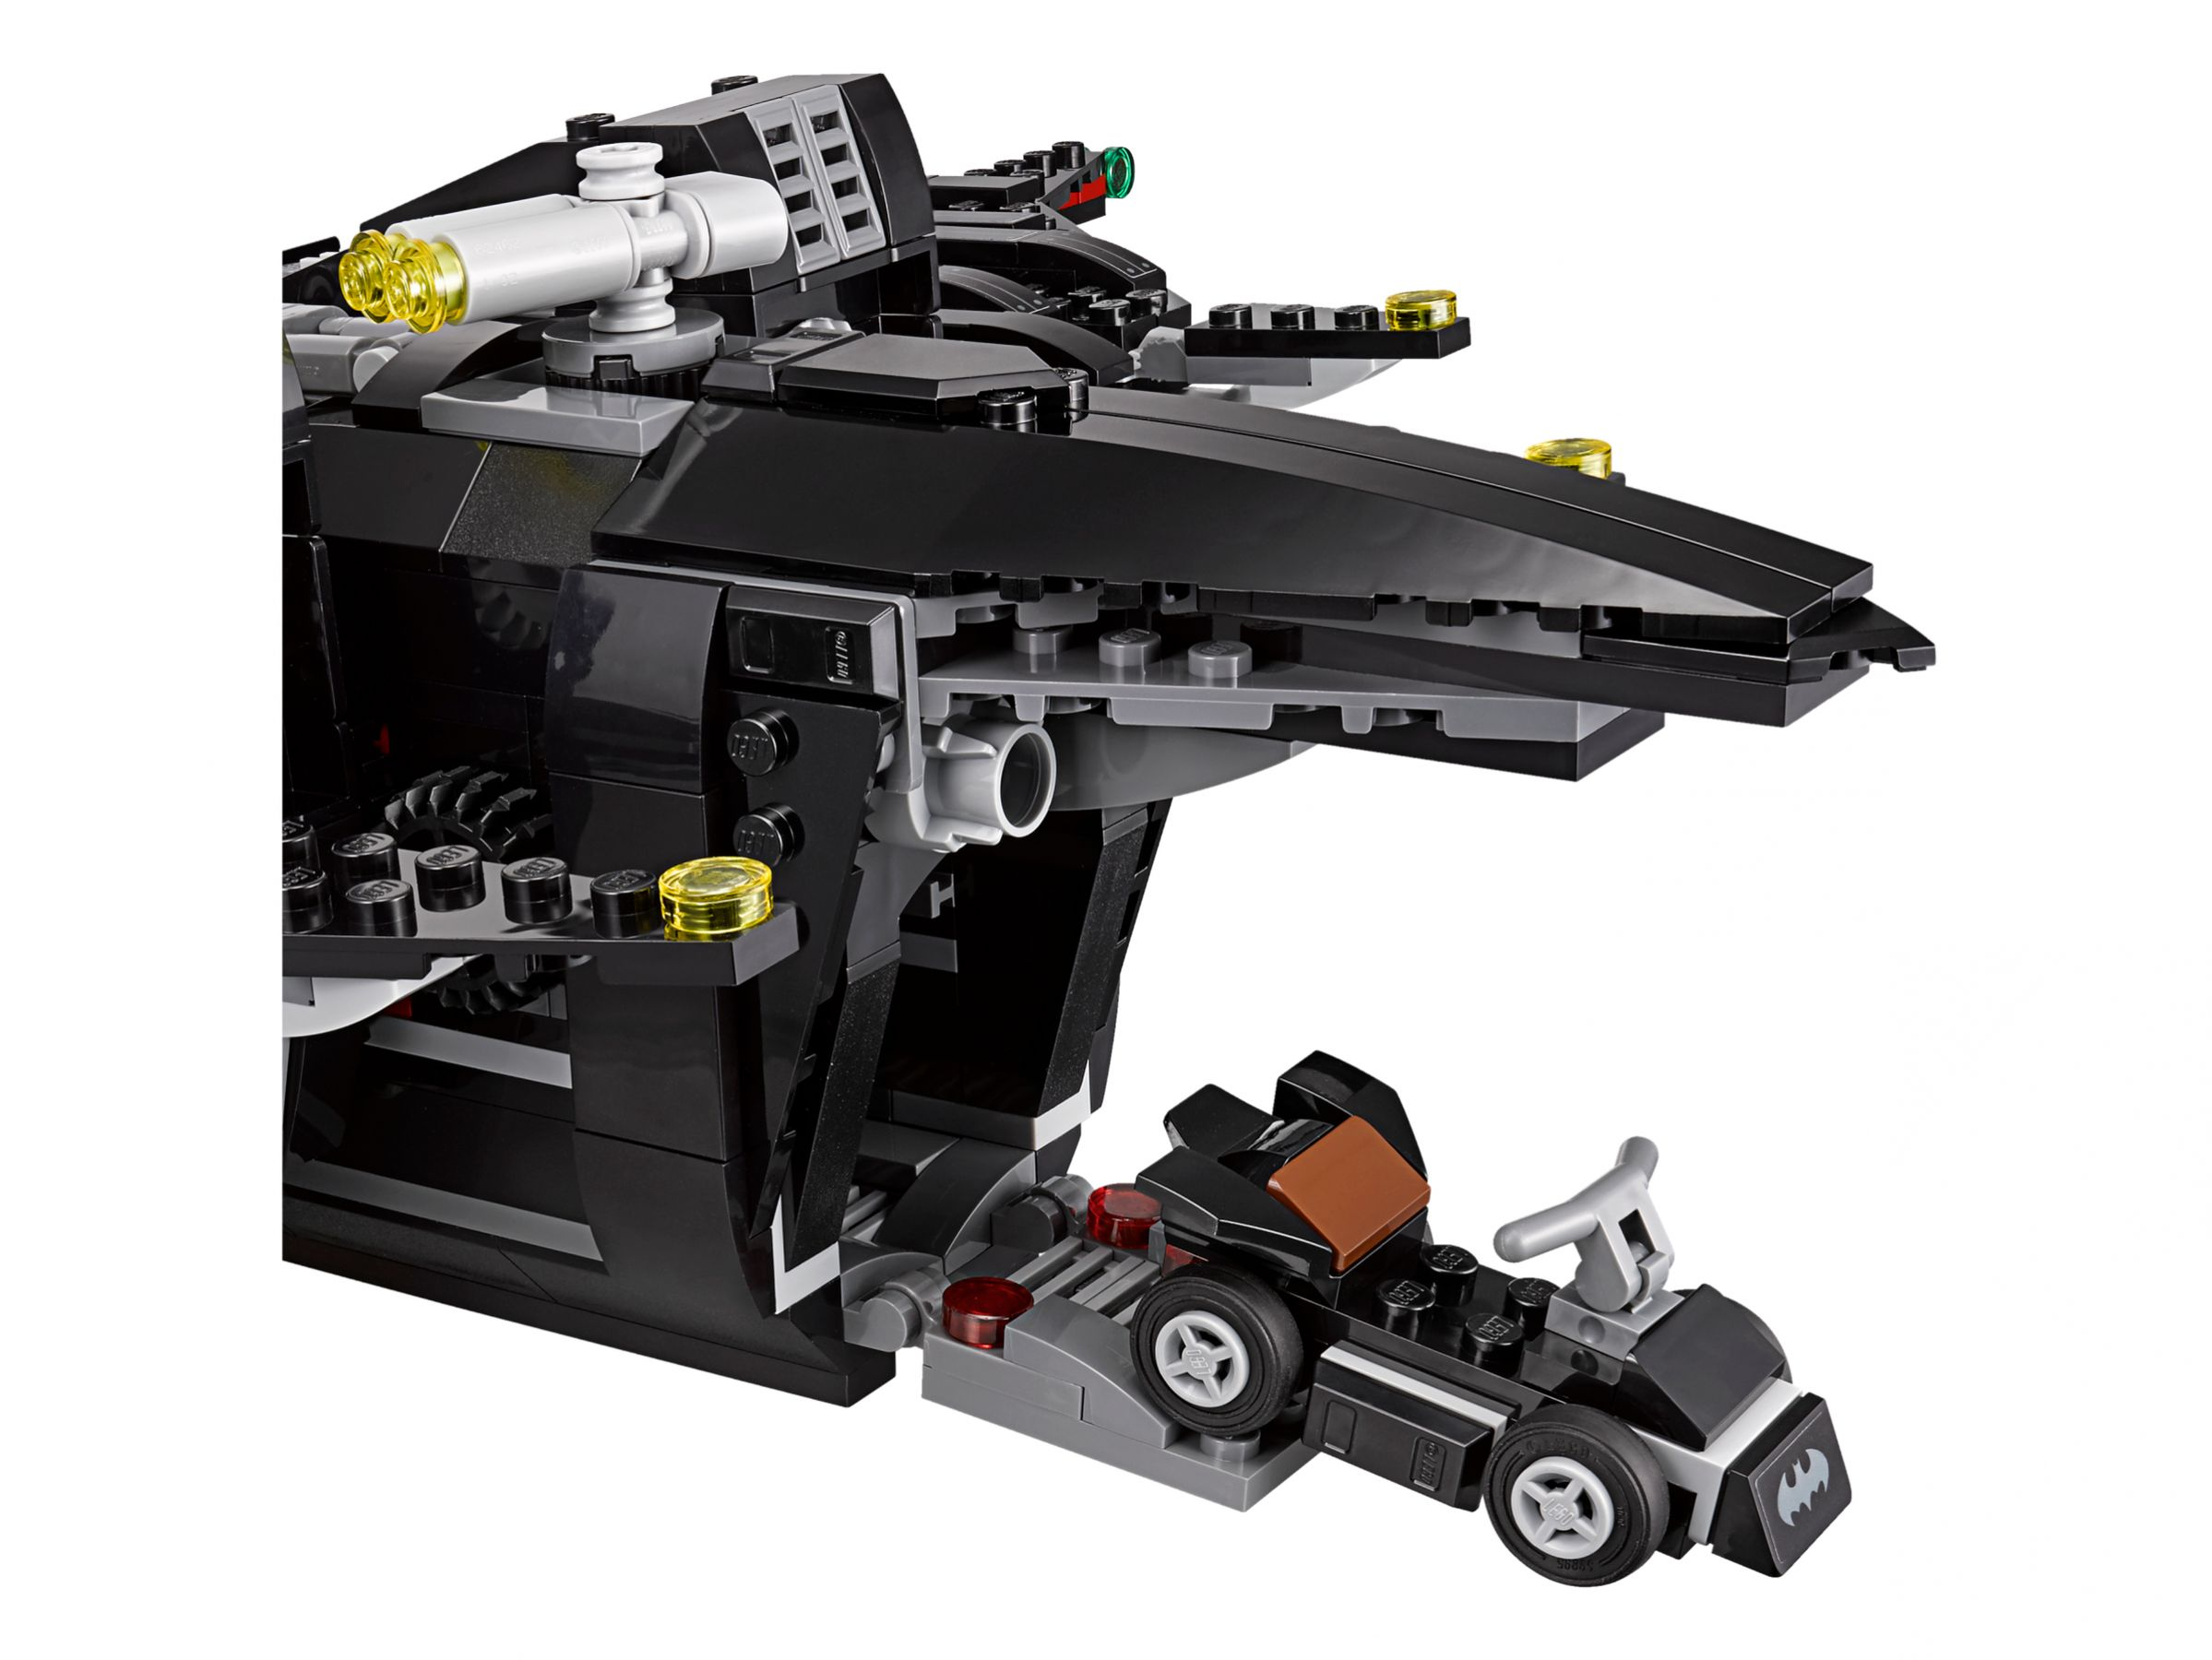 LEGO The LEGO Batman Movie 70916 Batwing LEGO_70916_alt5.jpg